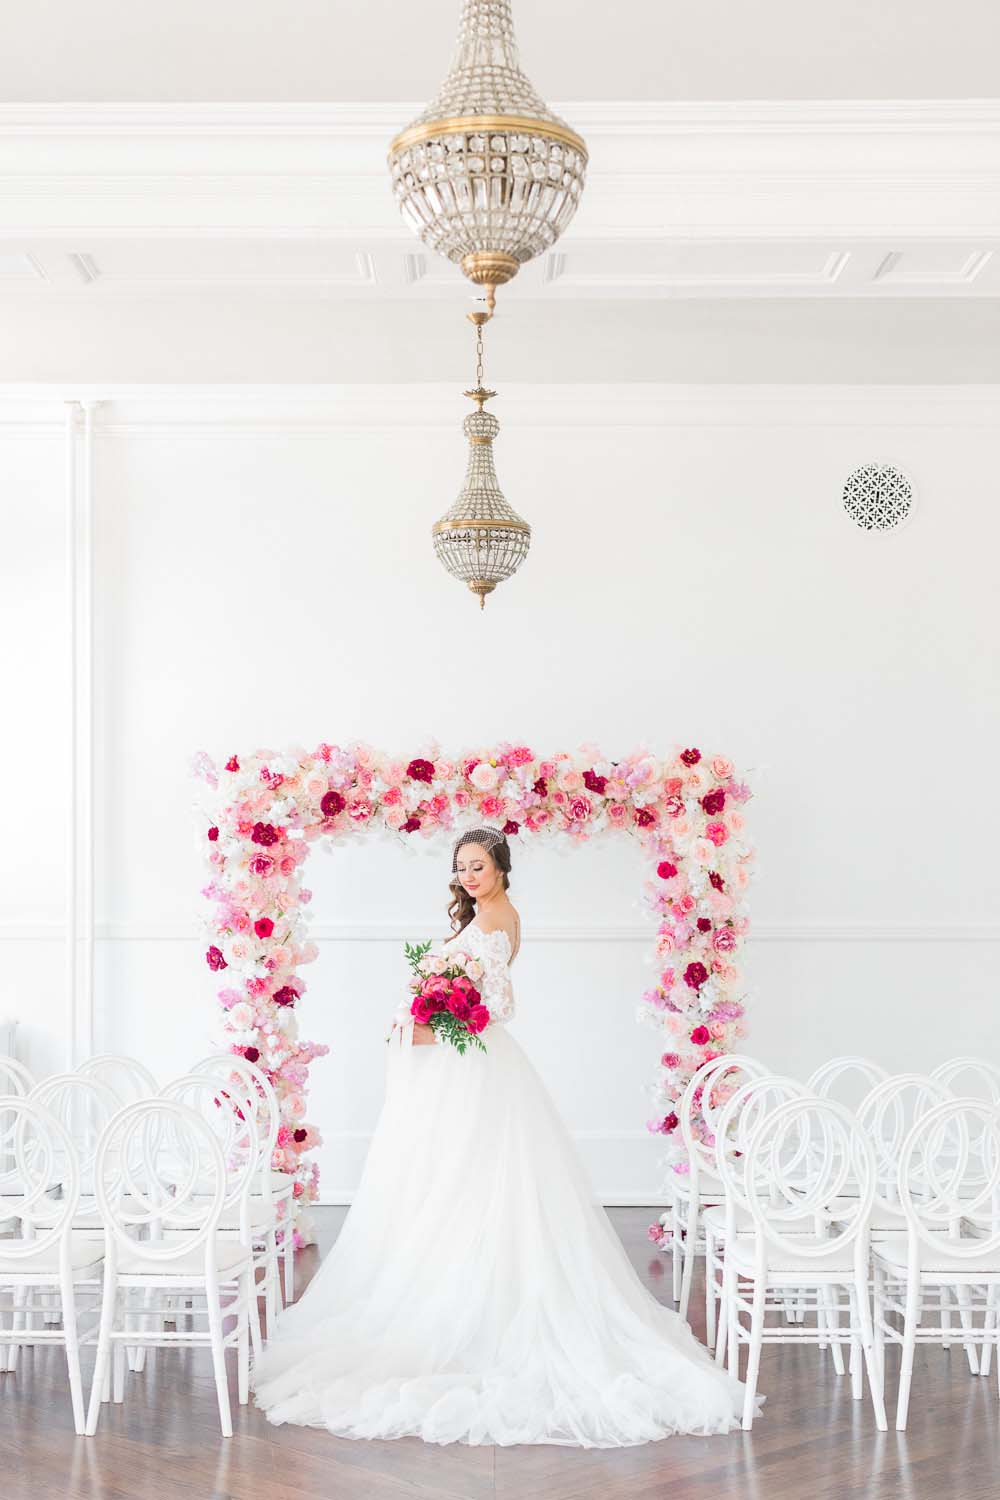 The Prettiest Romantic Pink Wedding Inspiration - bride in front of ceremony arch